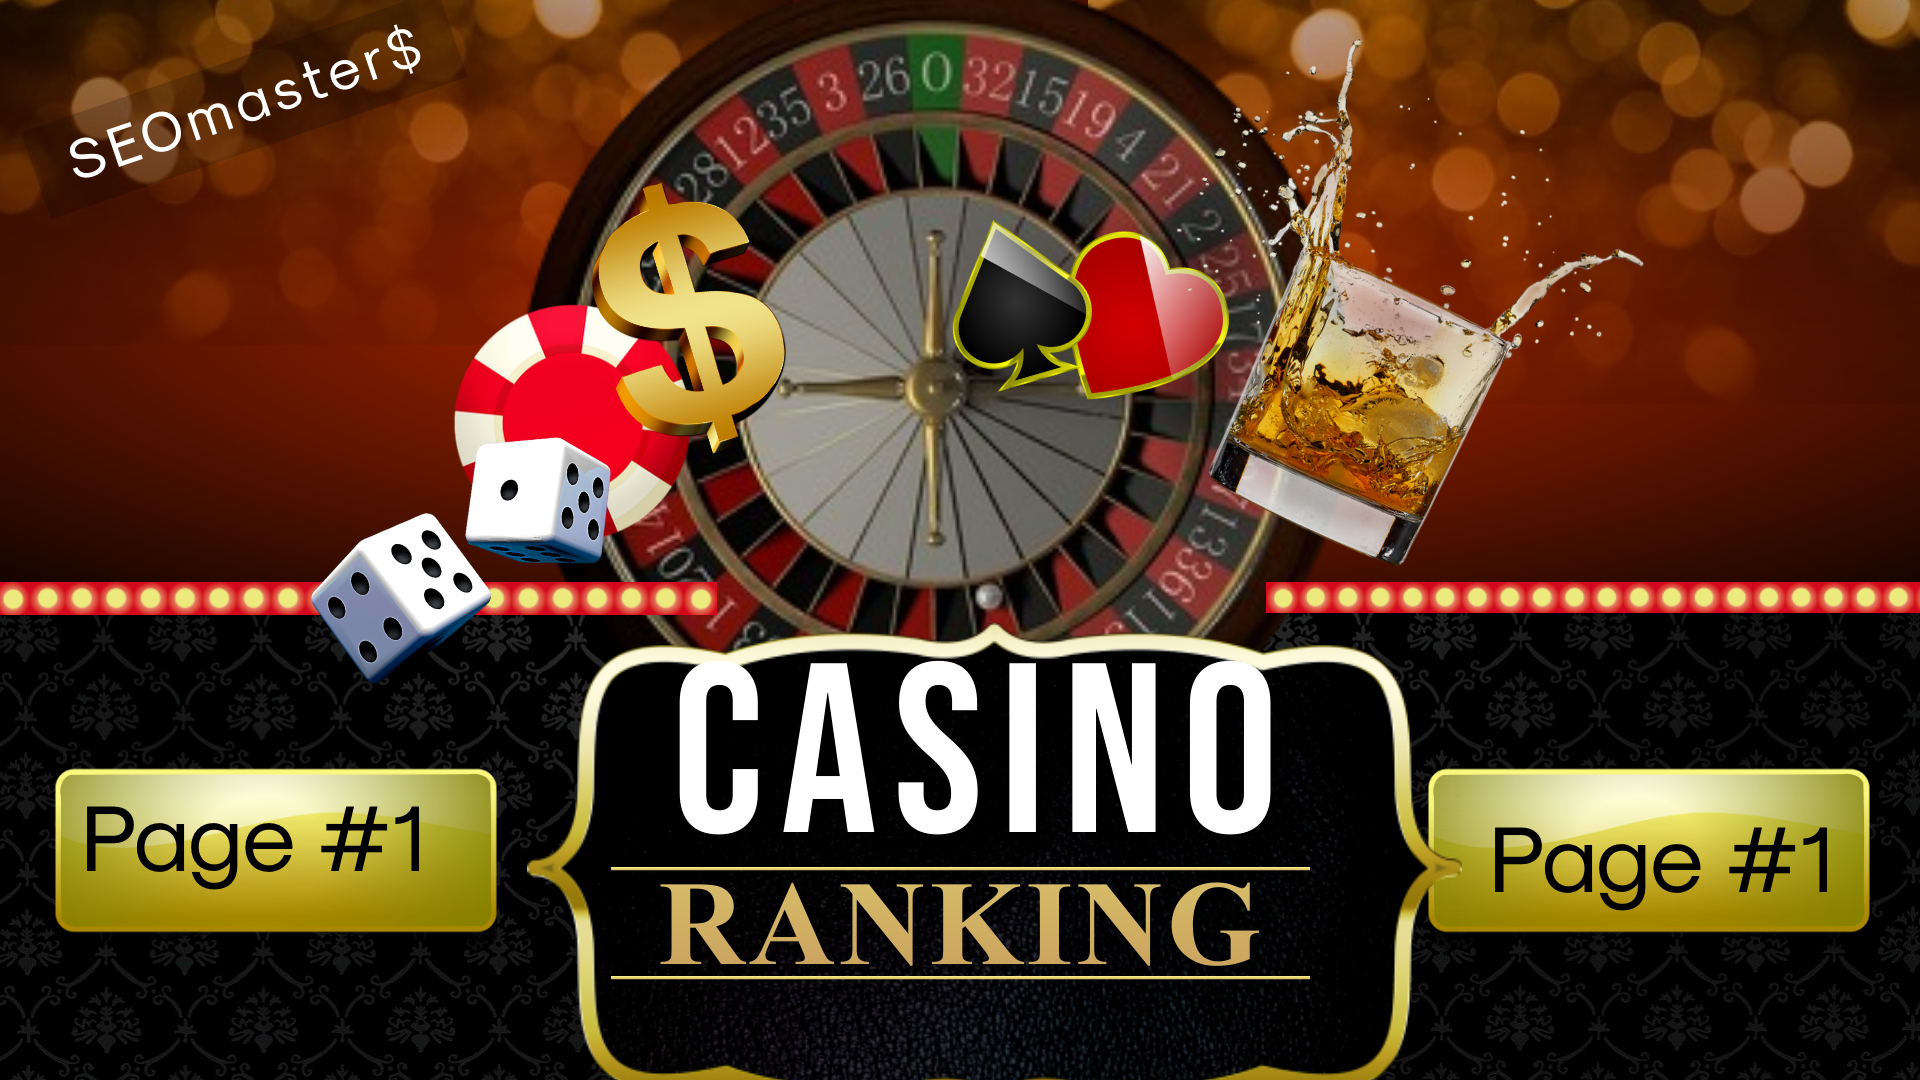 Rank Top 1st Page On Google Slot Online Agen Judi Bola Casino Poker Gambling Website with 2 Keywords